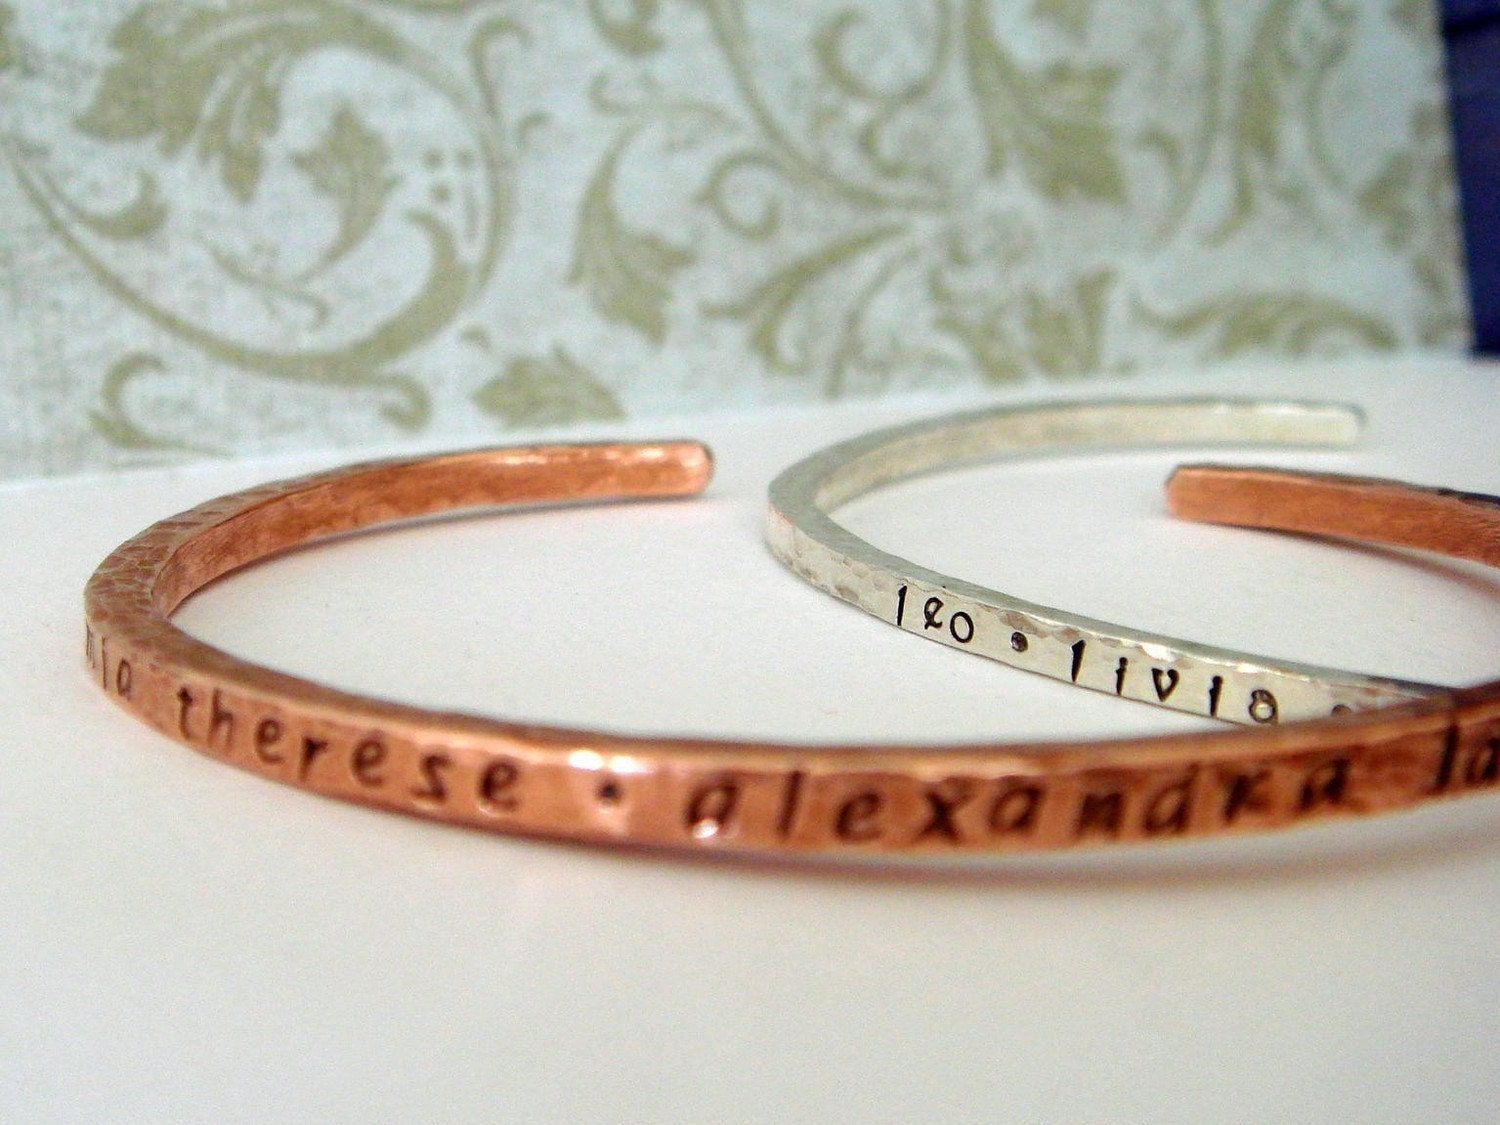 Small or Medium copper cuff - personalized for friend, teacher, love, bridesmaid, BFF or guy- could be twilight or new moon inspired. Can have inside secret message. 2 lowercase font choices.  Hammered or smooth finish.